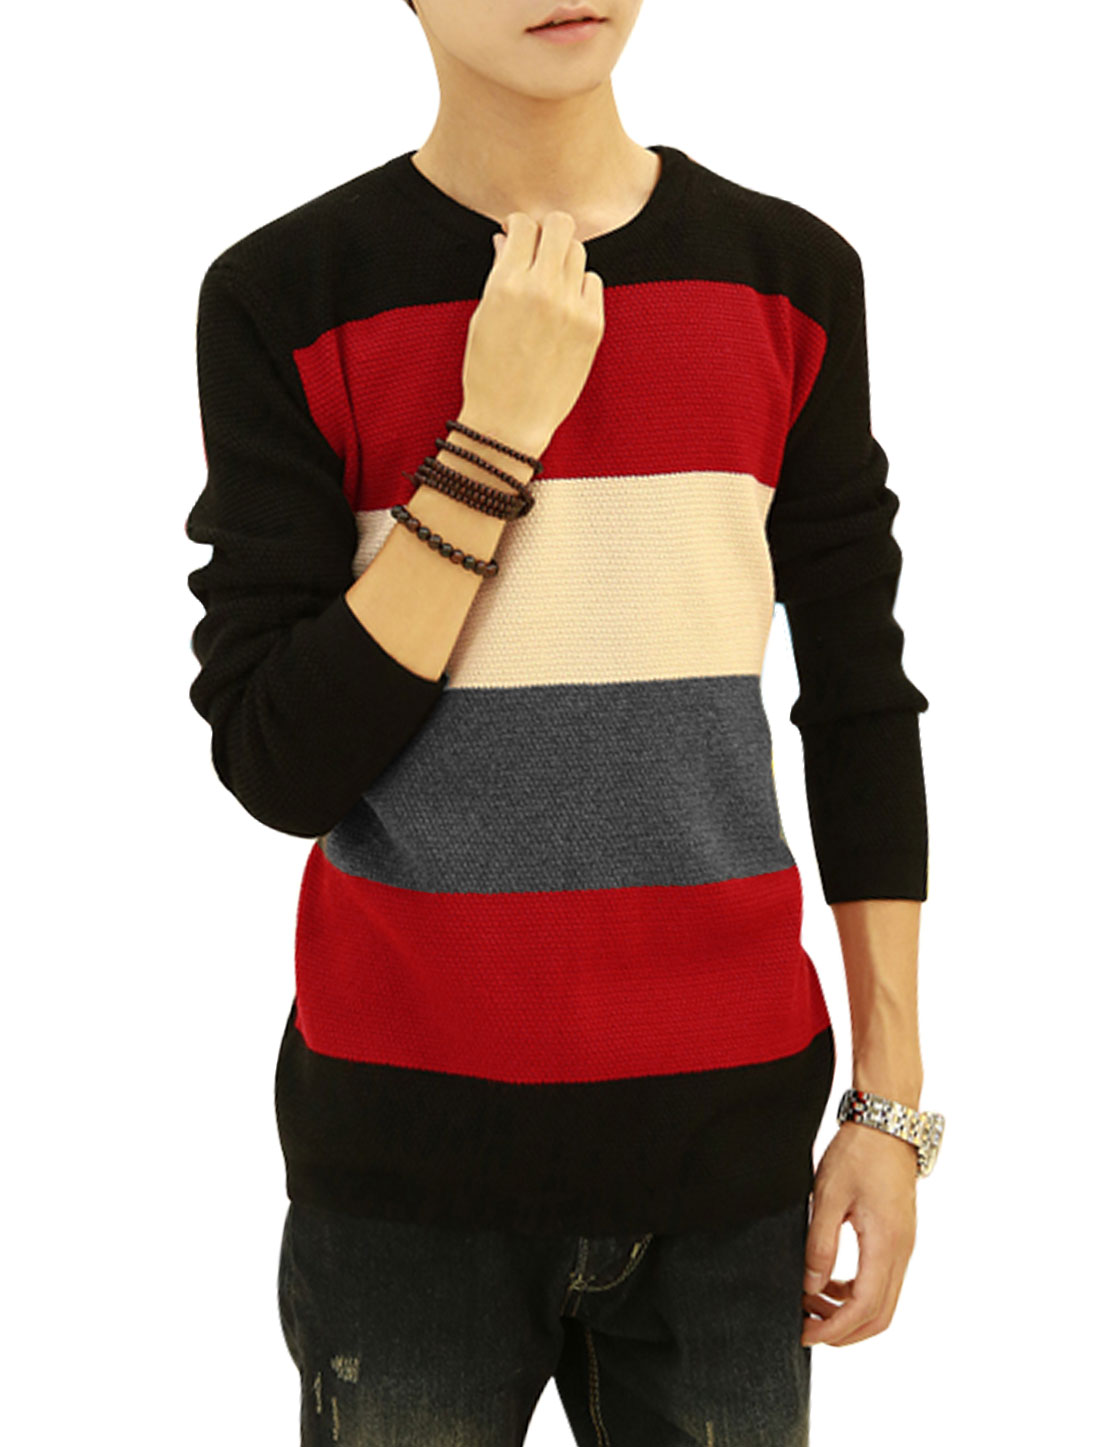 Men Black Red Slipover Color Block Slim Fit Knit Shirt S